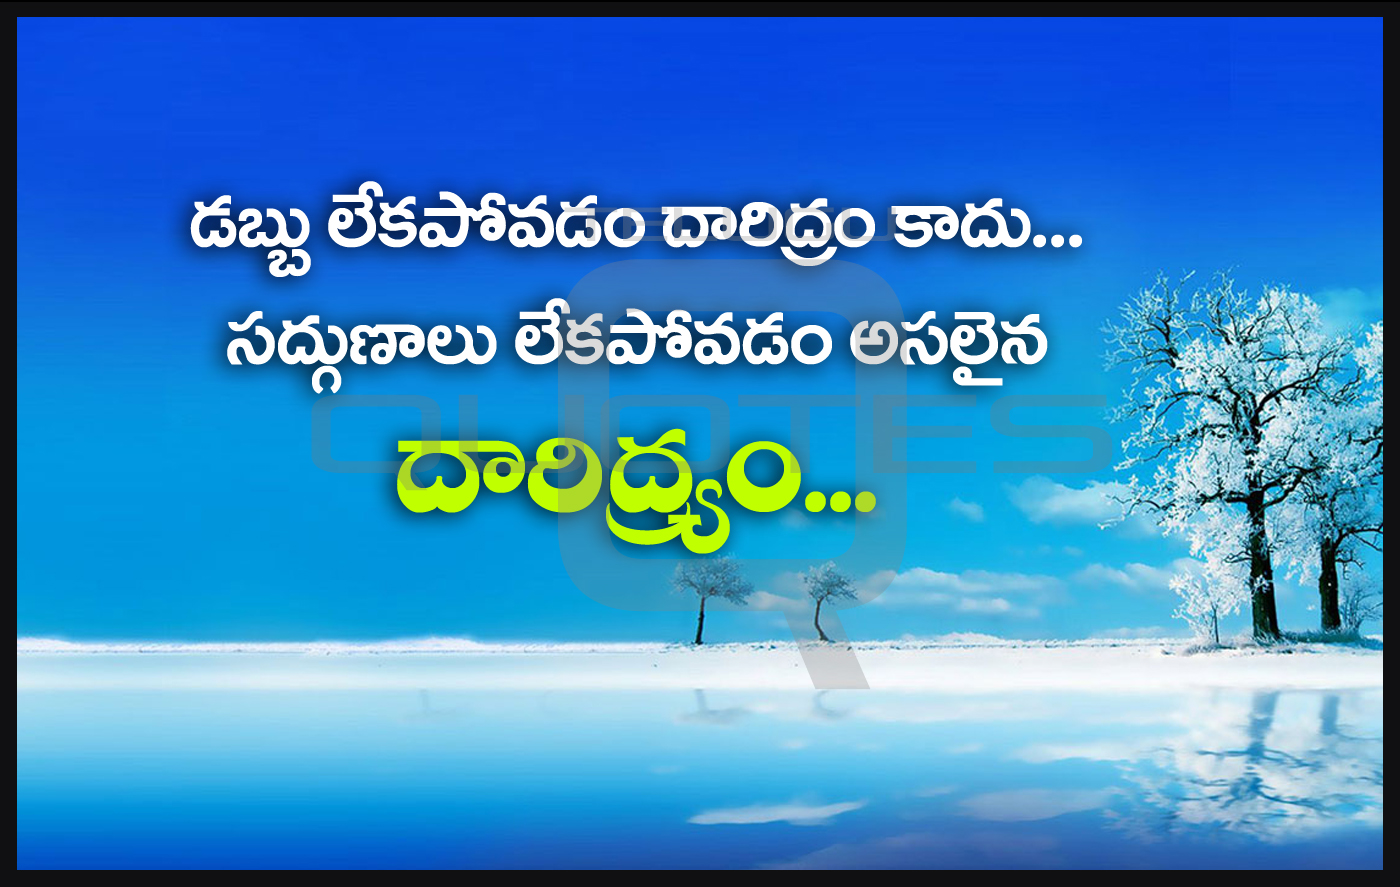 Inspiring Life Quotes Best Life Quotes In Telugu Hd Wallpapers Famous Inspiring Life